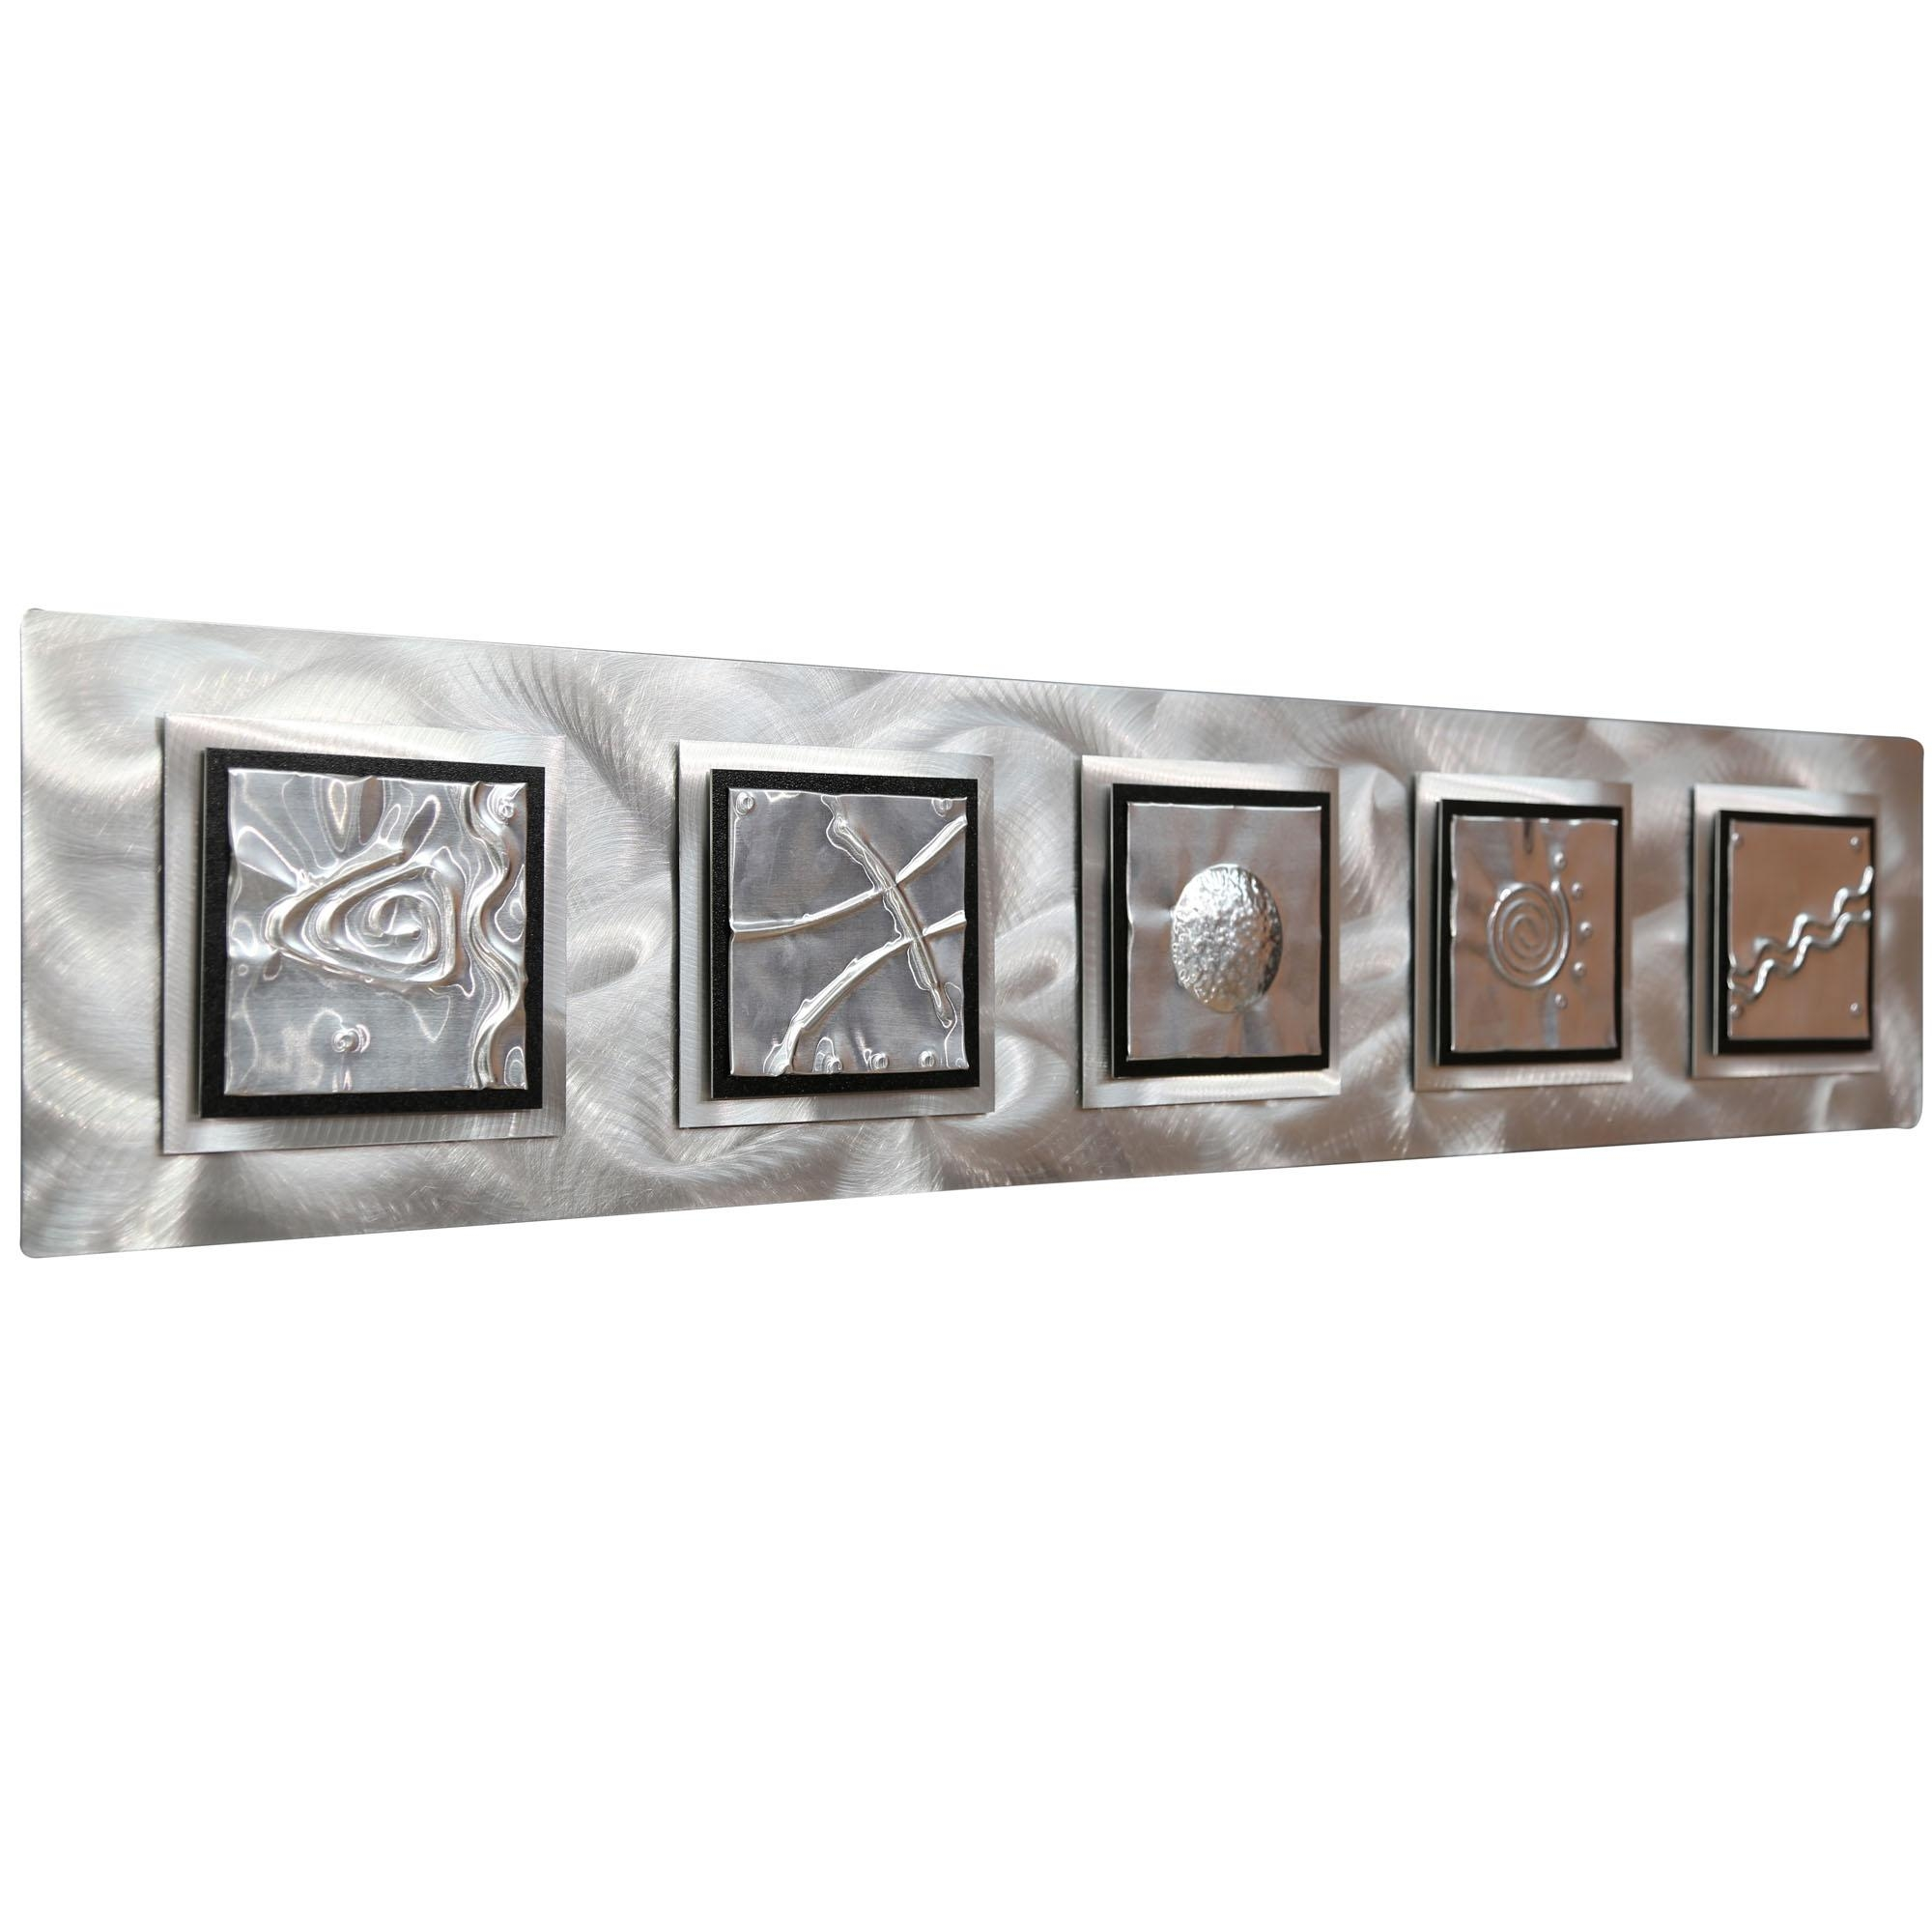 5 Elements – Silver/black Zen Metal Wall Art Accentjon Allen Within Elements Wall Art (View 4 of 20)